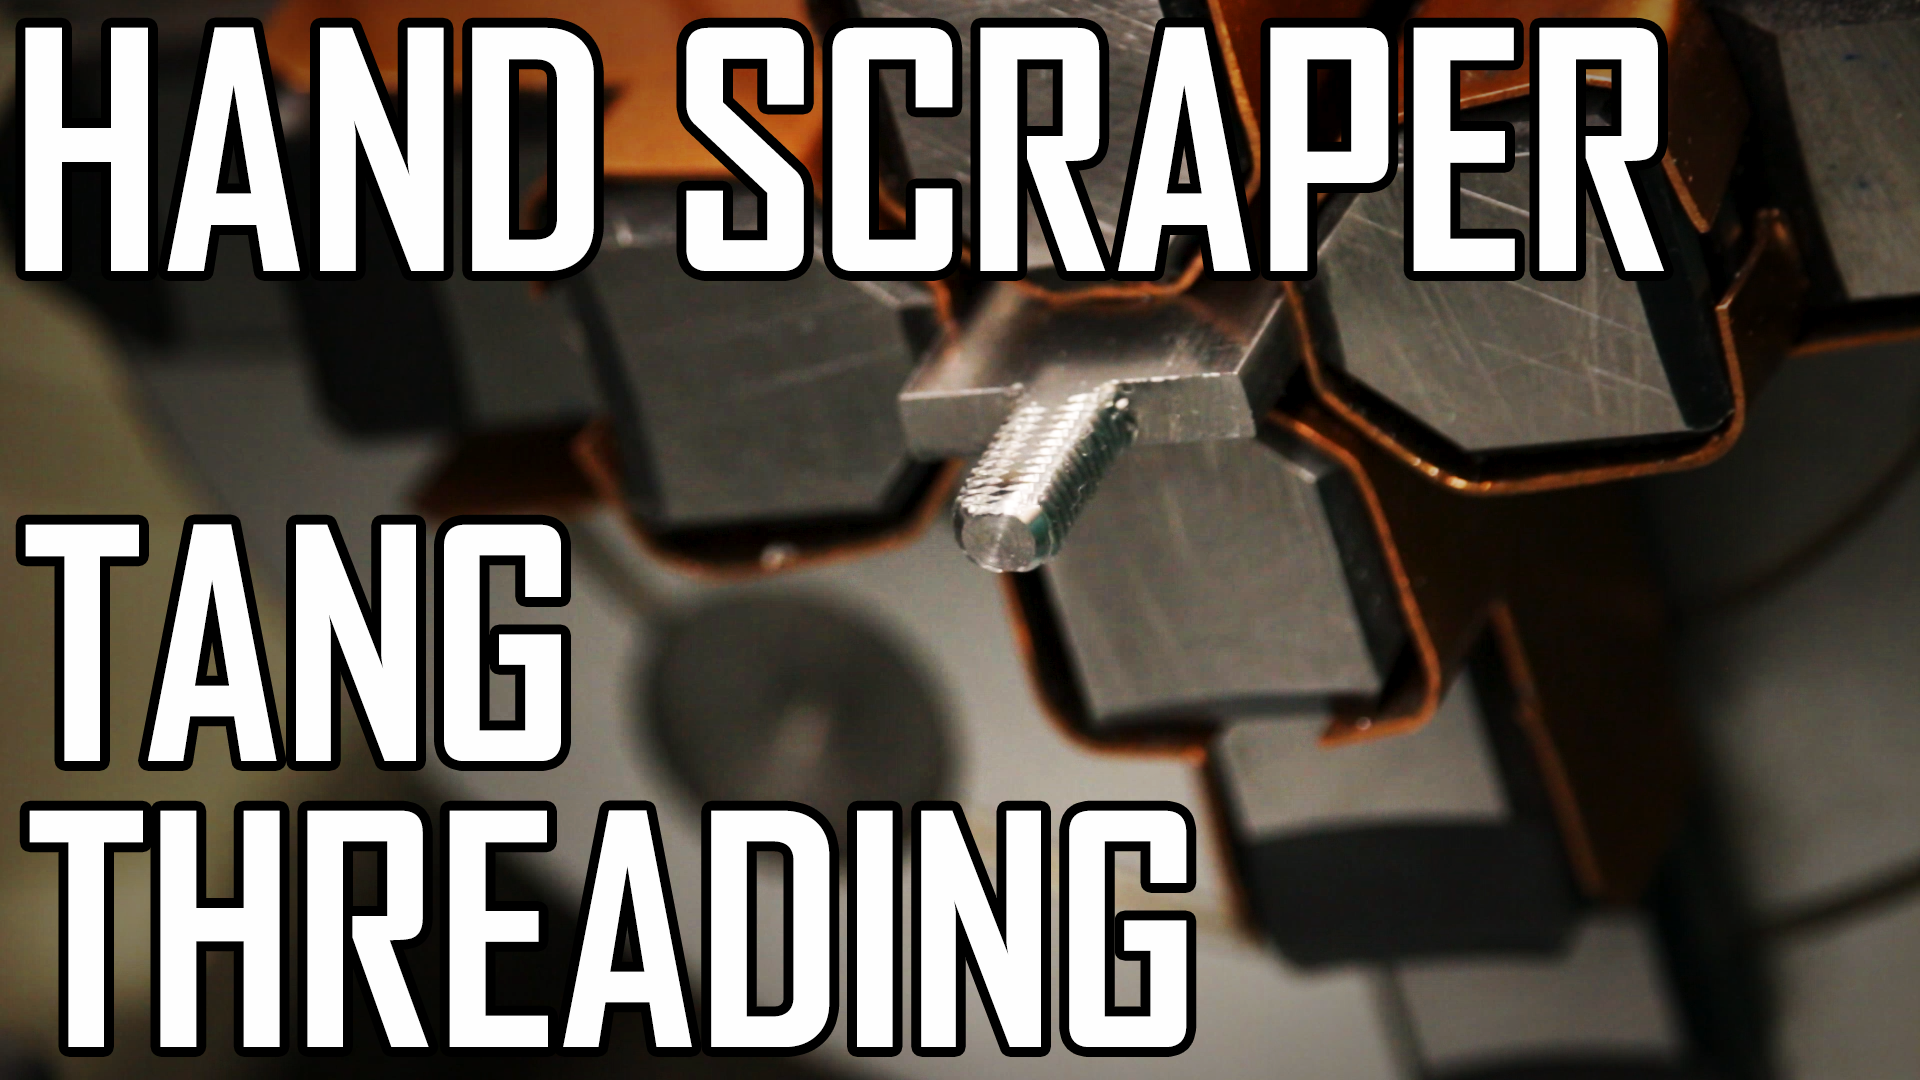 Hand Scraper 2: Threading the Tang